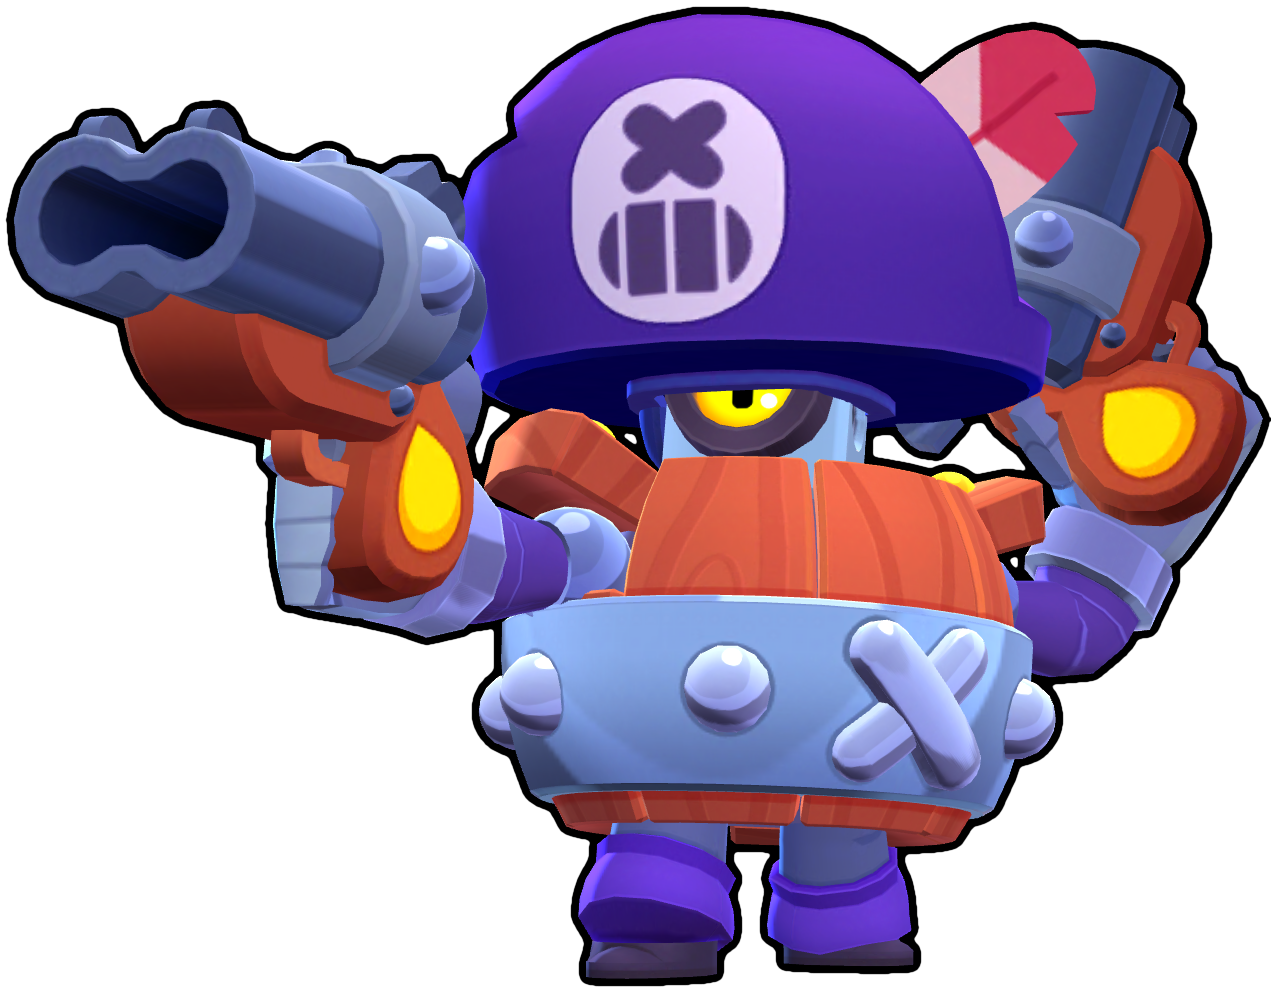 Darryl Brawl Stars Wiki Fandom Powered By Wikia